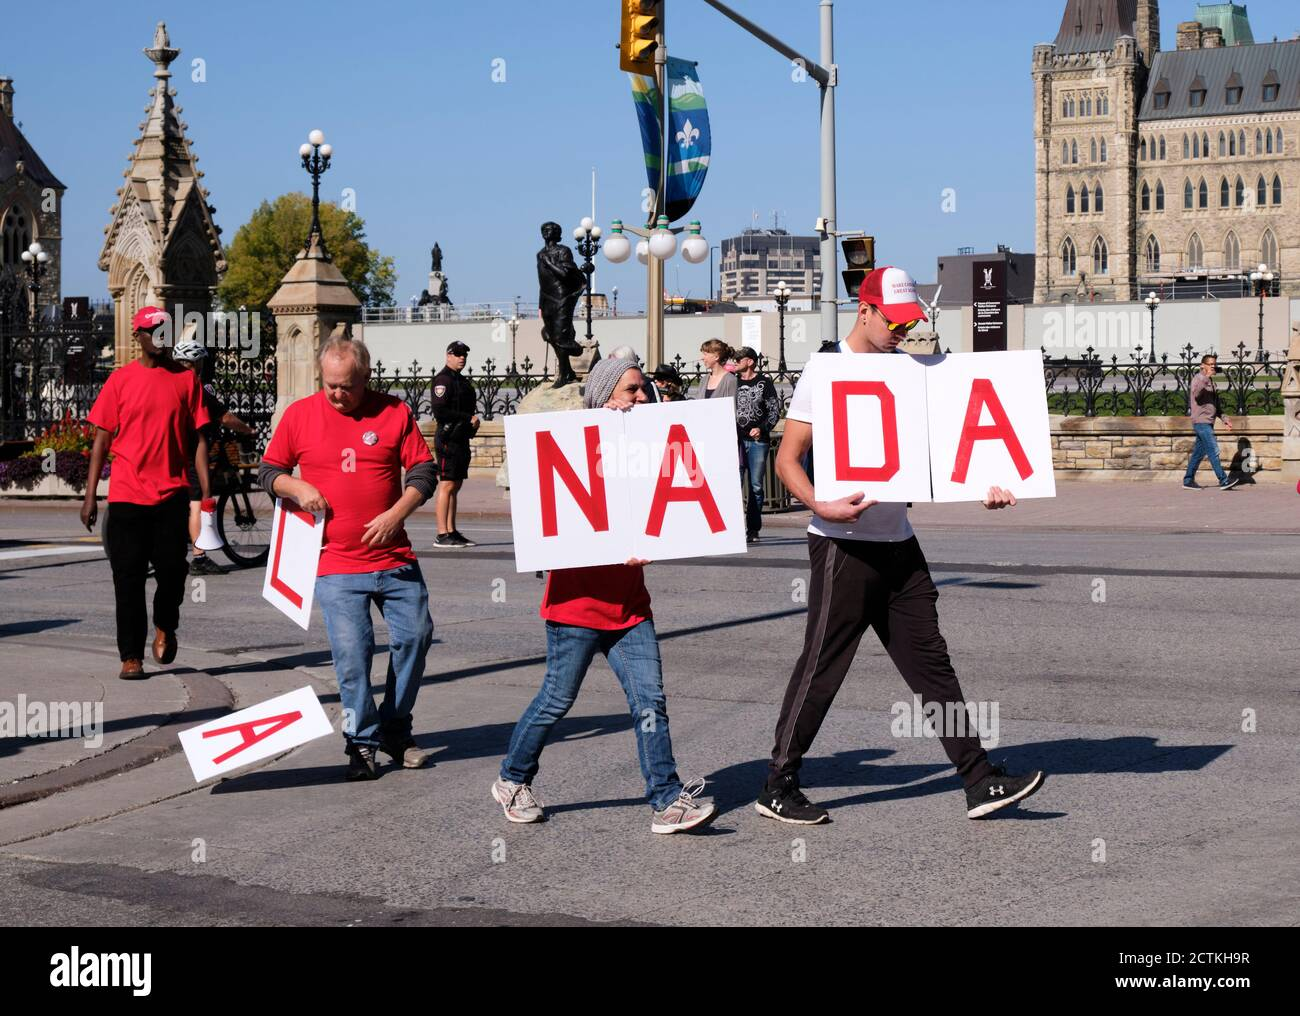 protesters-in-front-of-canadian-parliament-with-letter-to-spell-canada-where-one-protester-drops-his-letters-on-pavement-part-of-protest-message-thro-2CTKH9R.jpg